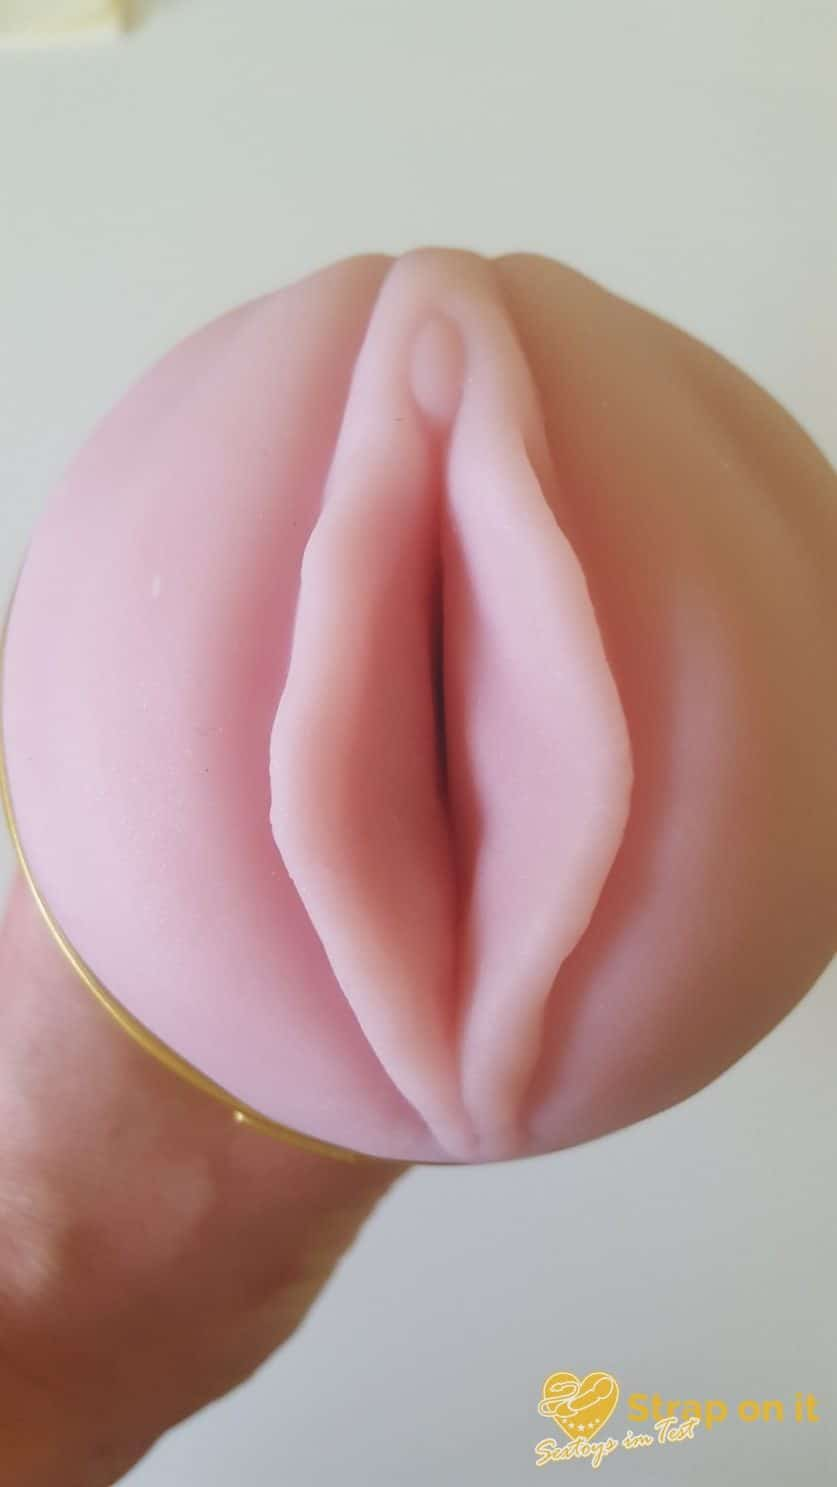 Fleshlight-STU-Test_Oeffnung-Vagina